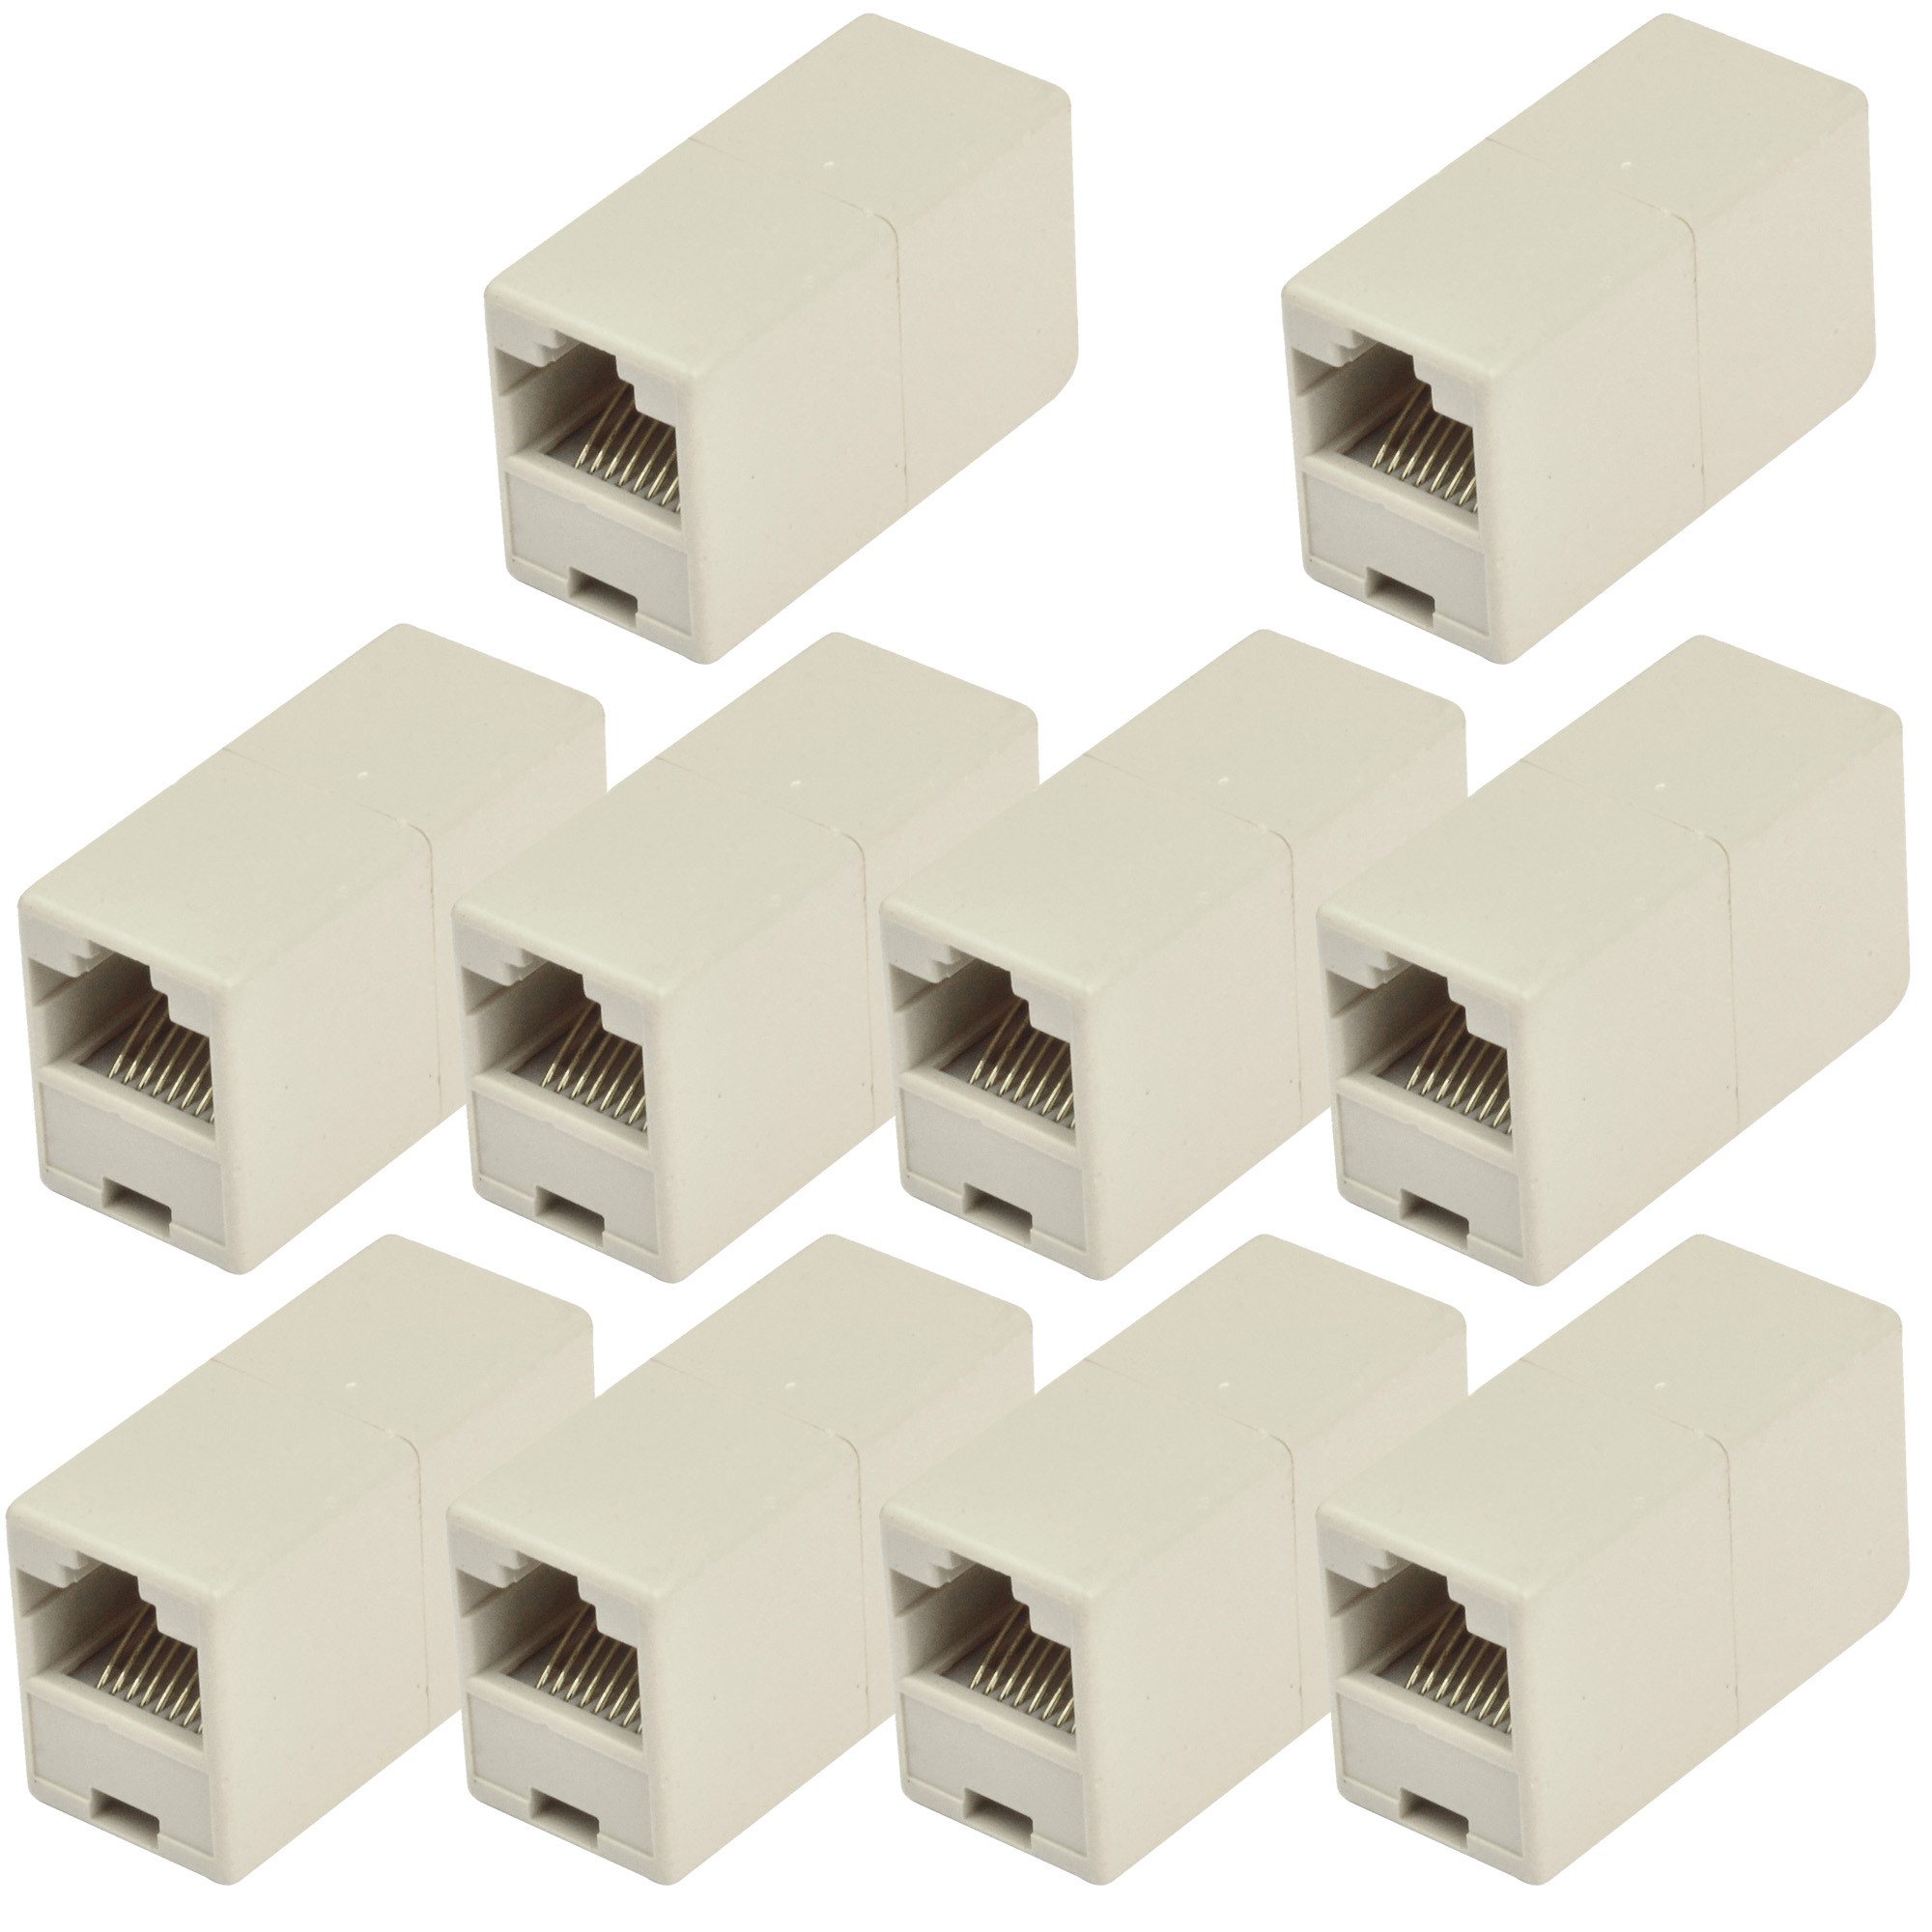 MENGS® 10Pcs High quality Newtwork Ethernet Lan Cable Joiner Coupler Connector RJ45 CAT5 Extender Plug